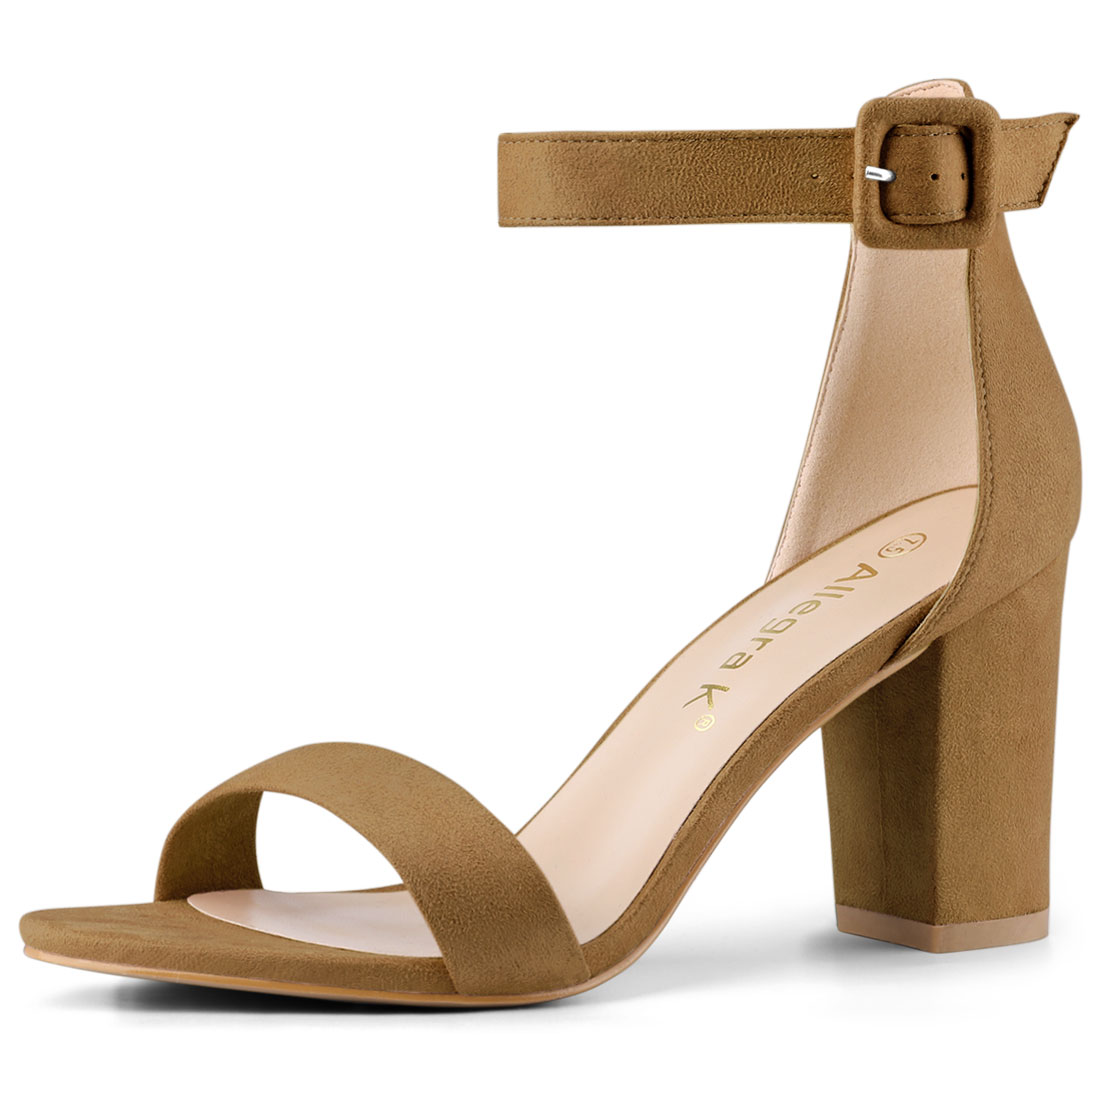 Woman Open Toe Chunky High Heel Ankle Strap Sandals Camel US 9